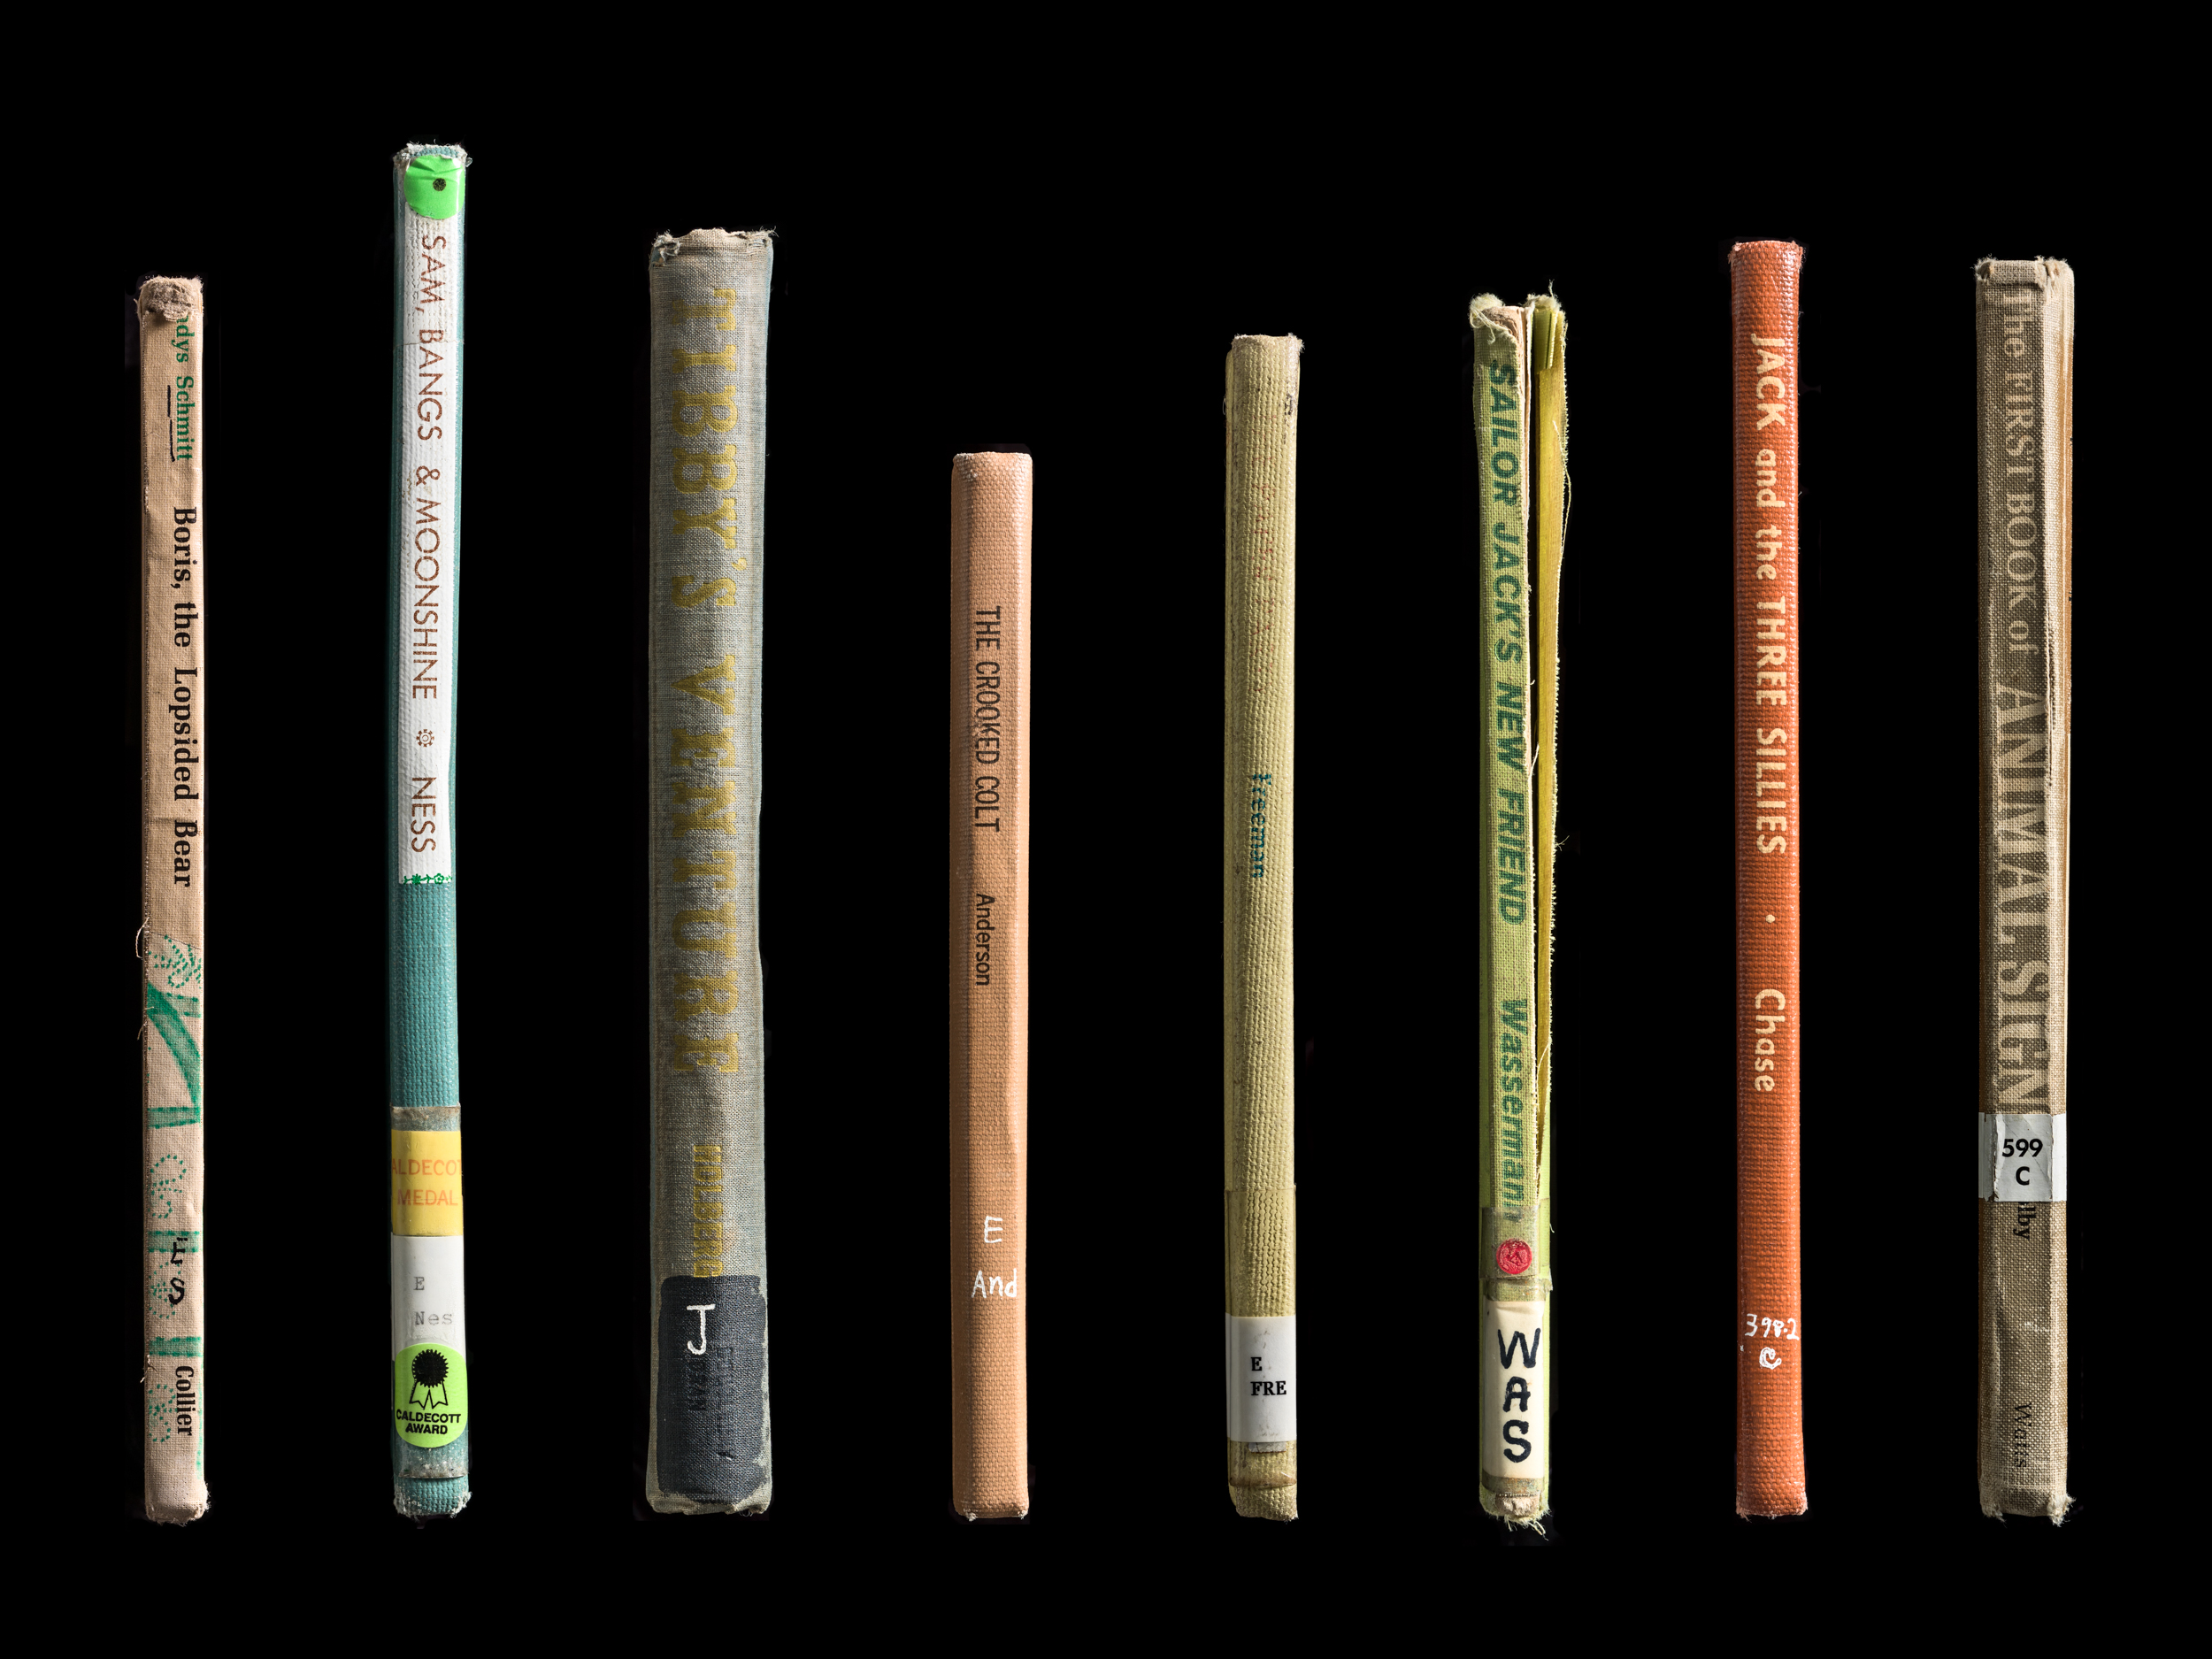 Mansfield_Expired_Spines_13.jpg